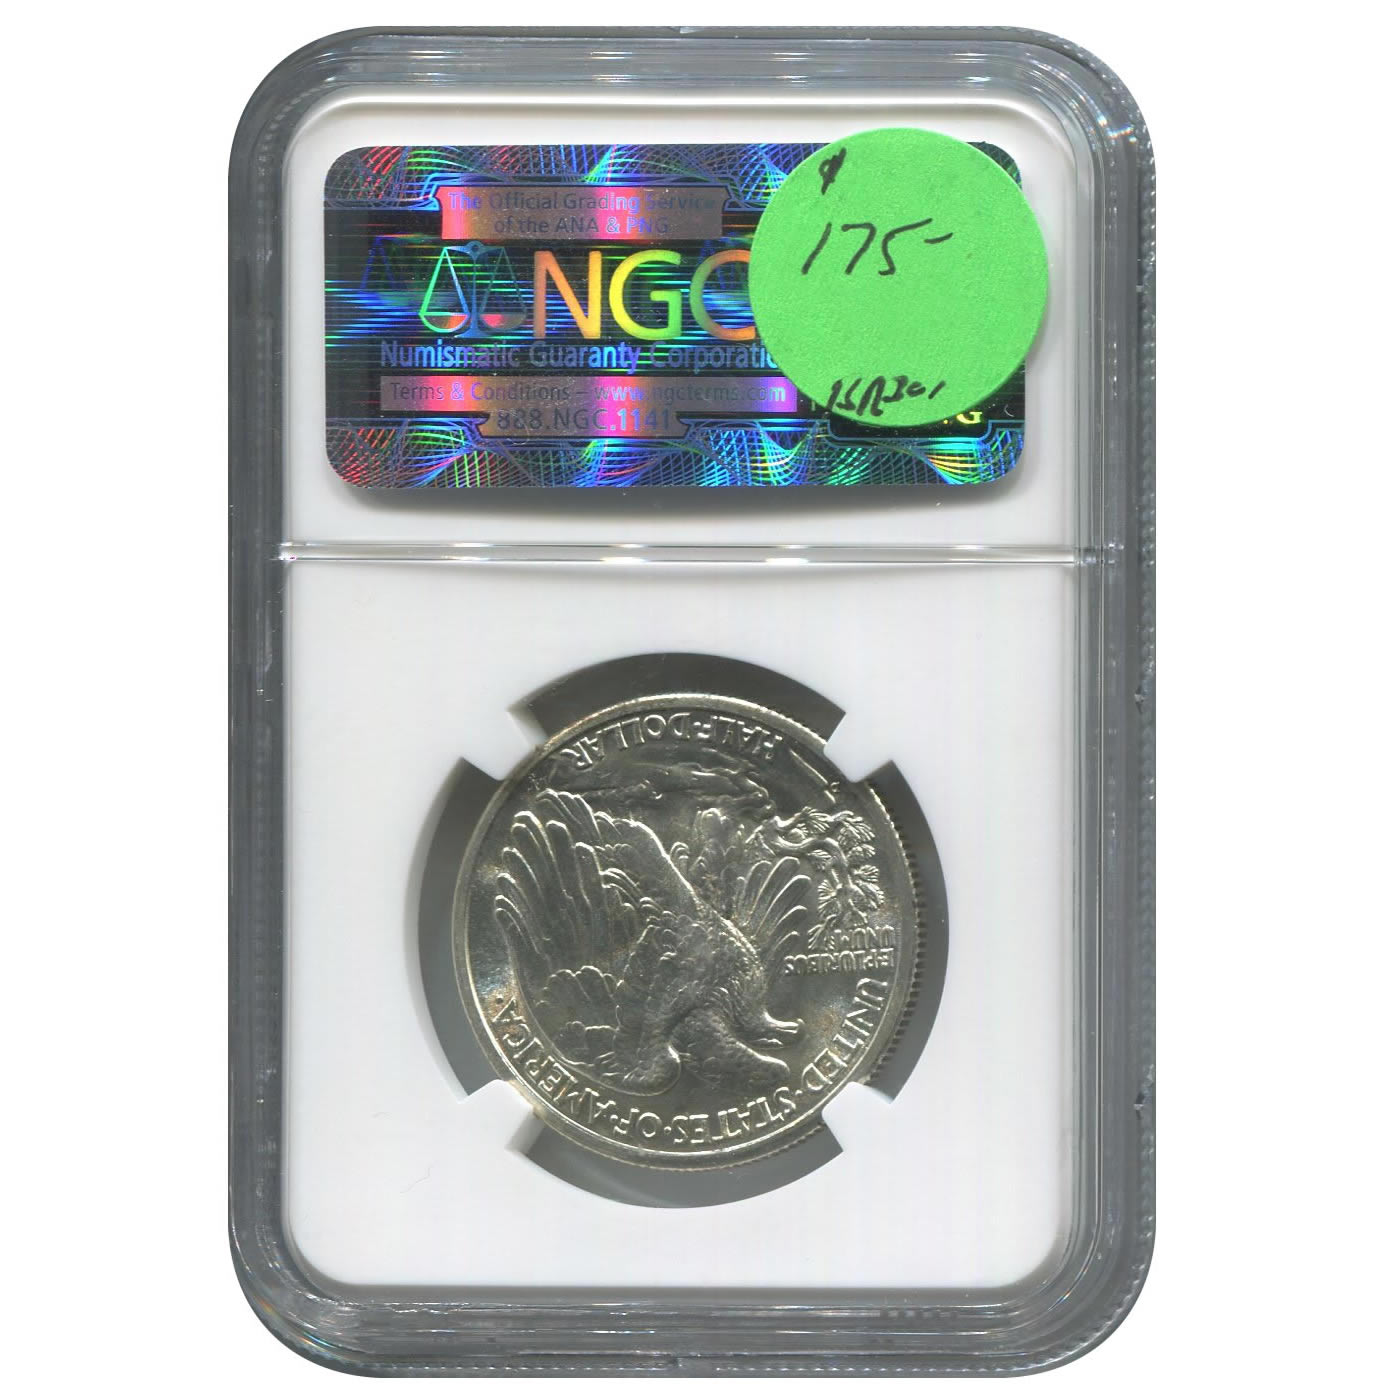 Ngc coin inventory software barcode : Bitcoin technology ppt